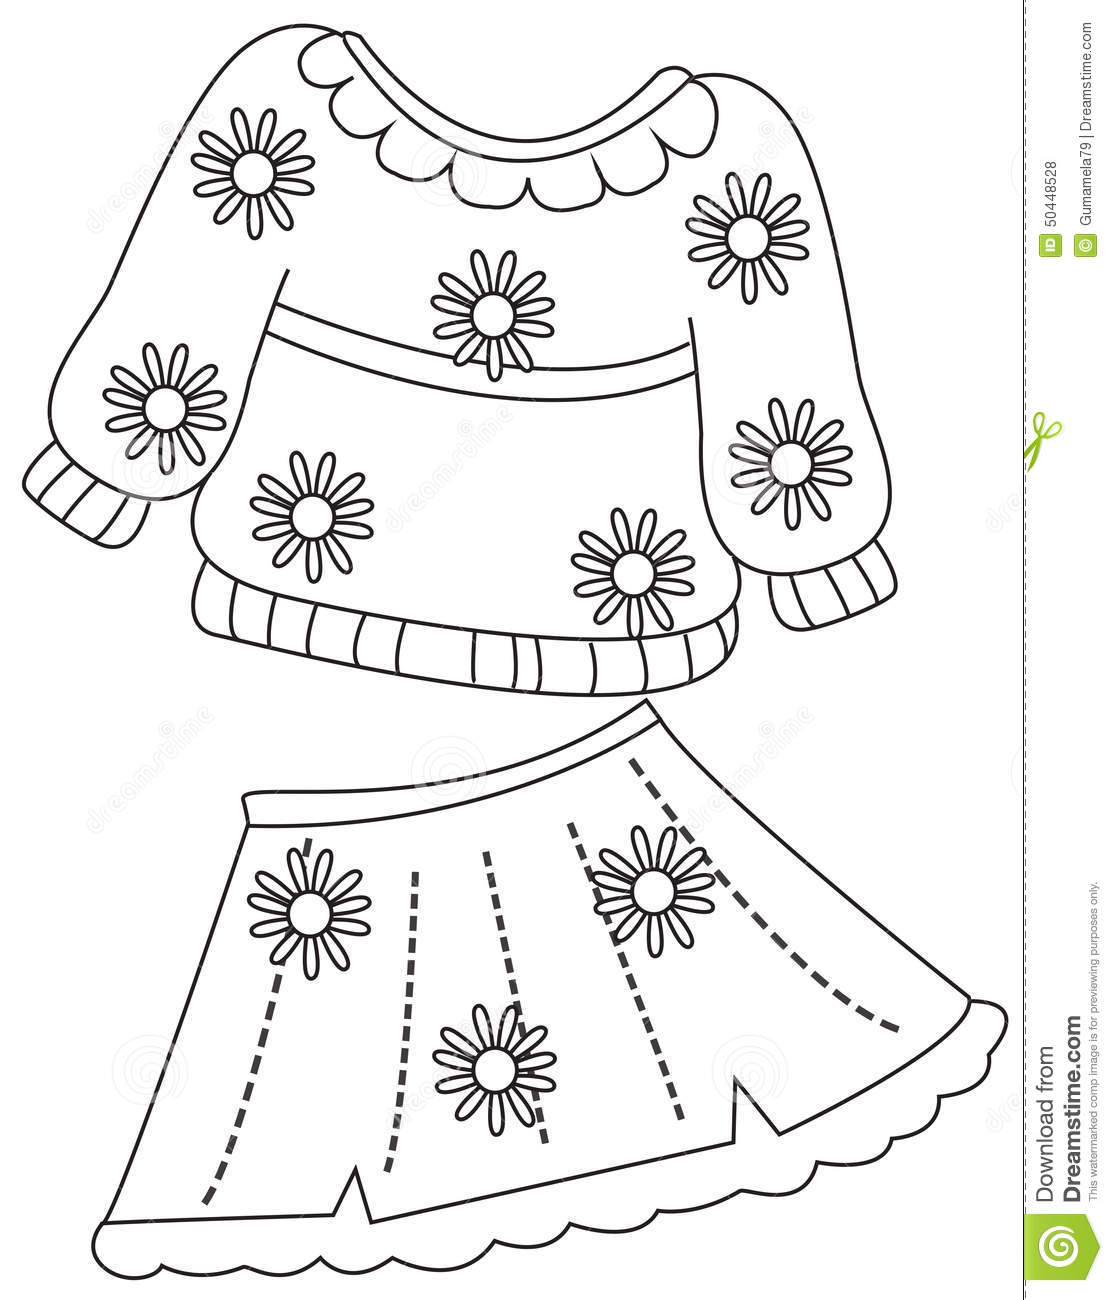 clothes coloring pages Print Clothes Coloring Page Stock Illustration   Illustration of  clothes coloring pages